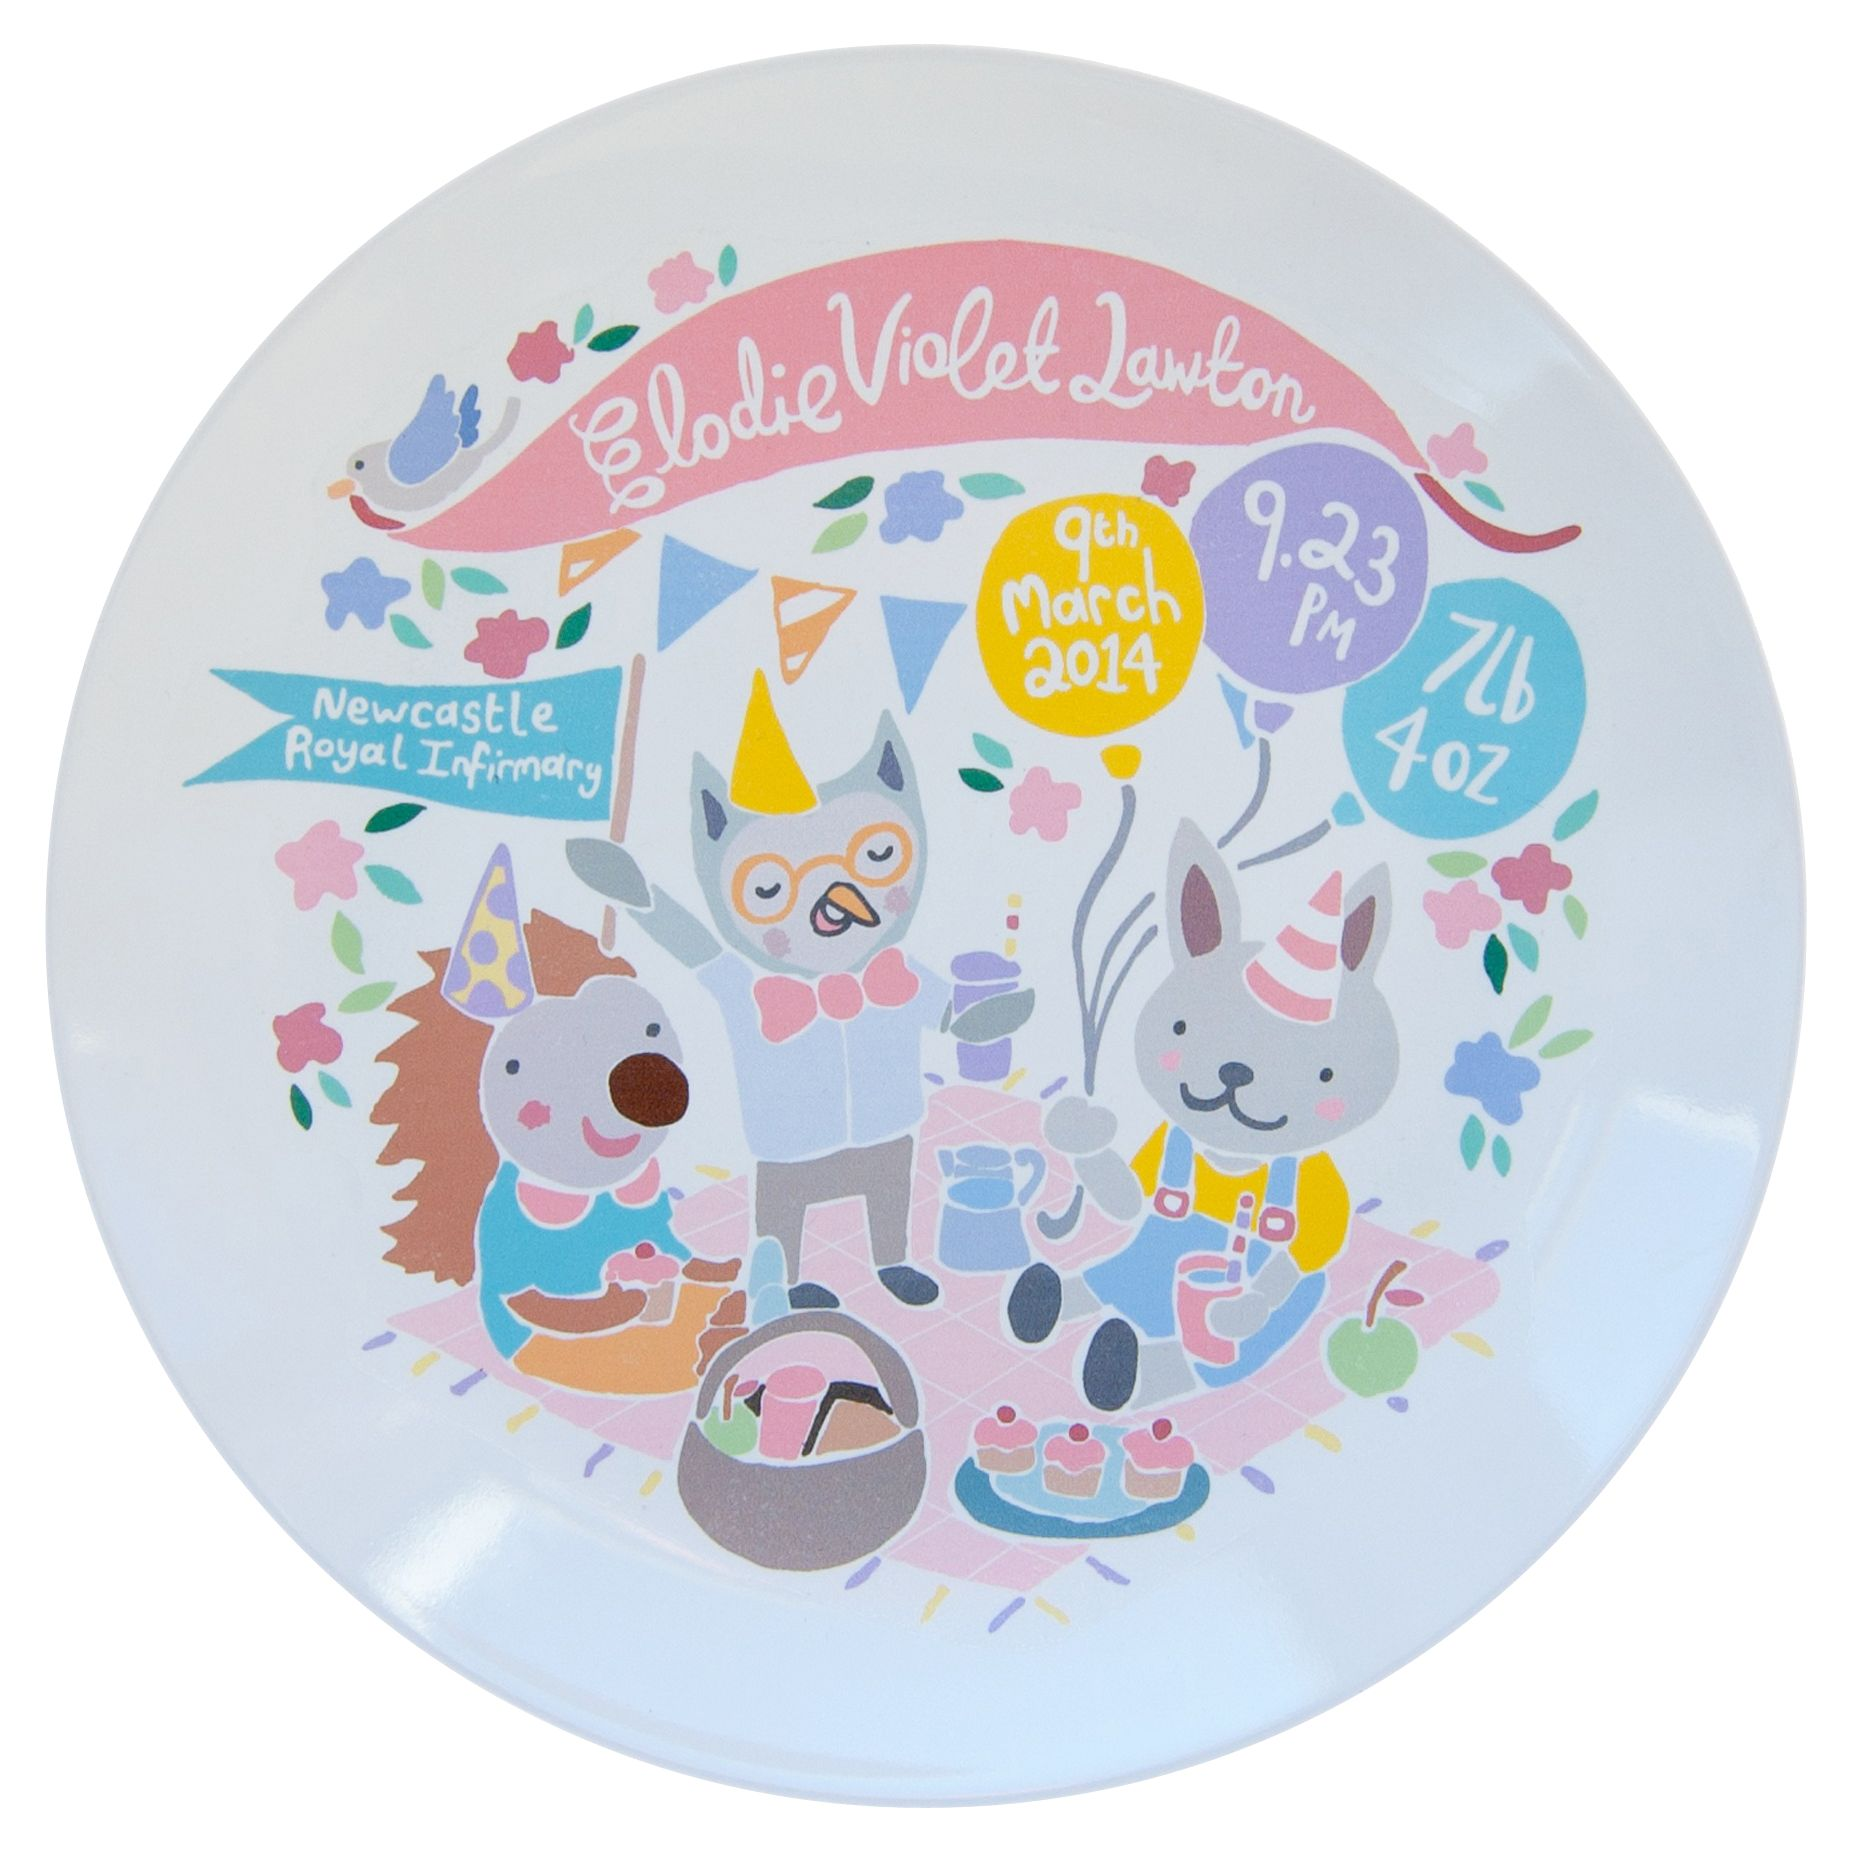 Ethel and Co Ethel and Co Personalised Woodland Picnic Decorative Plate, Pink